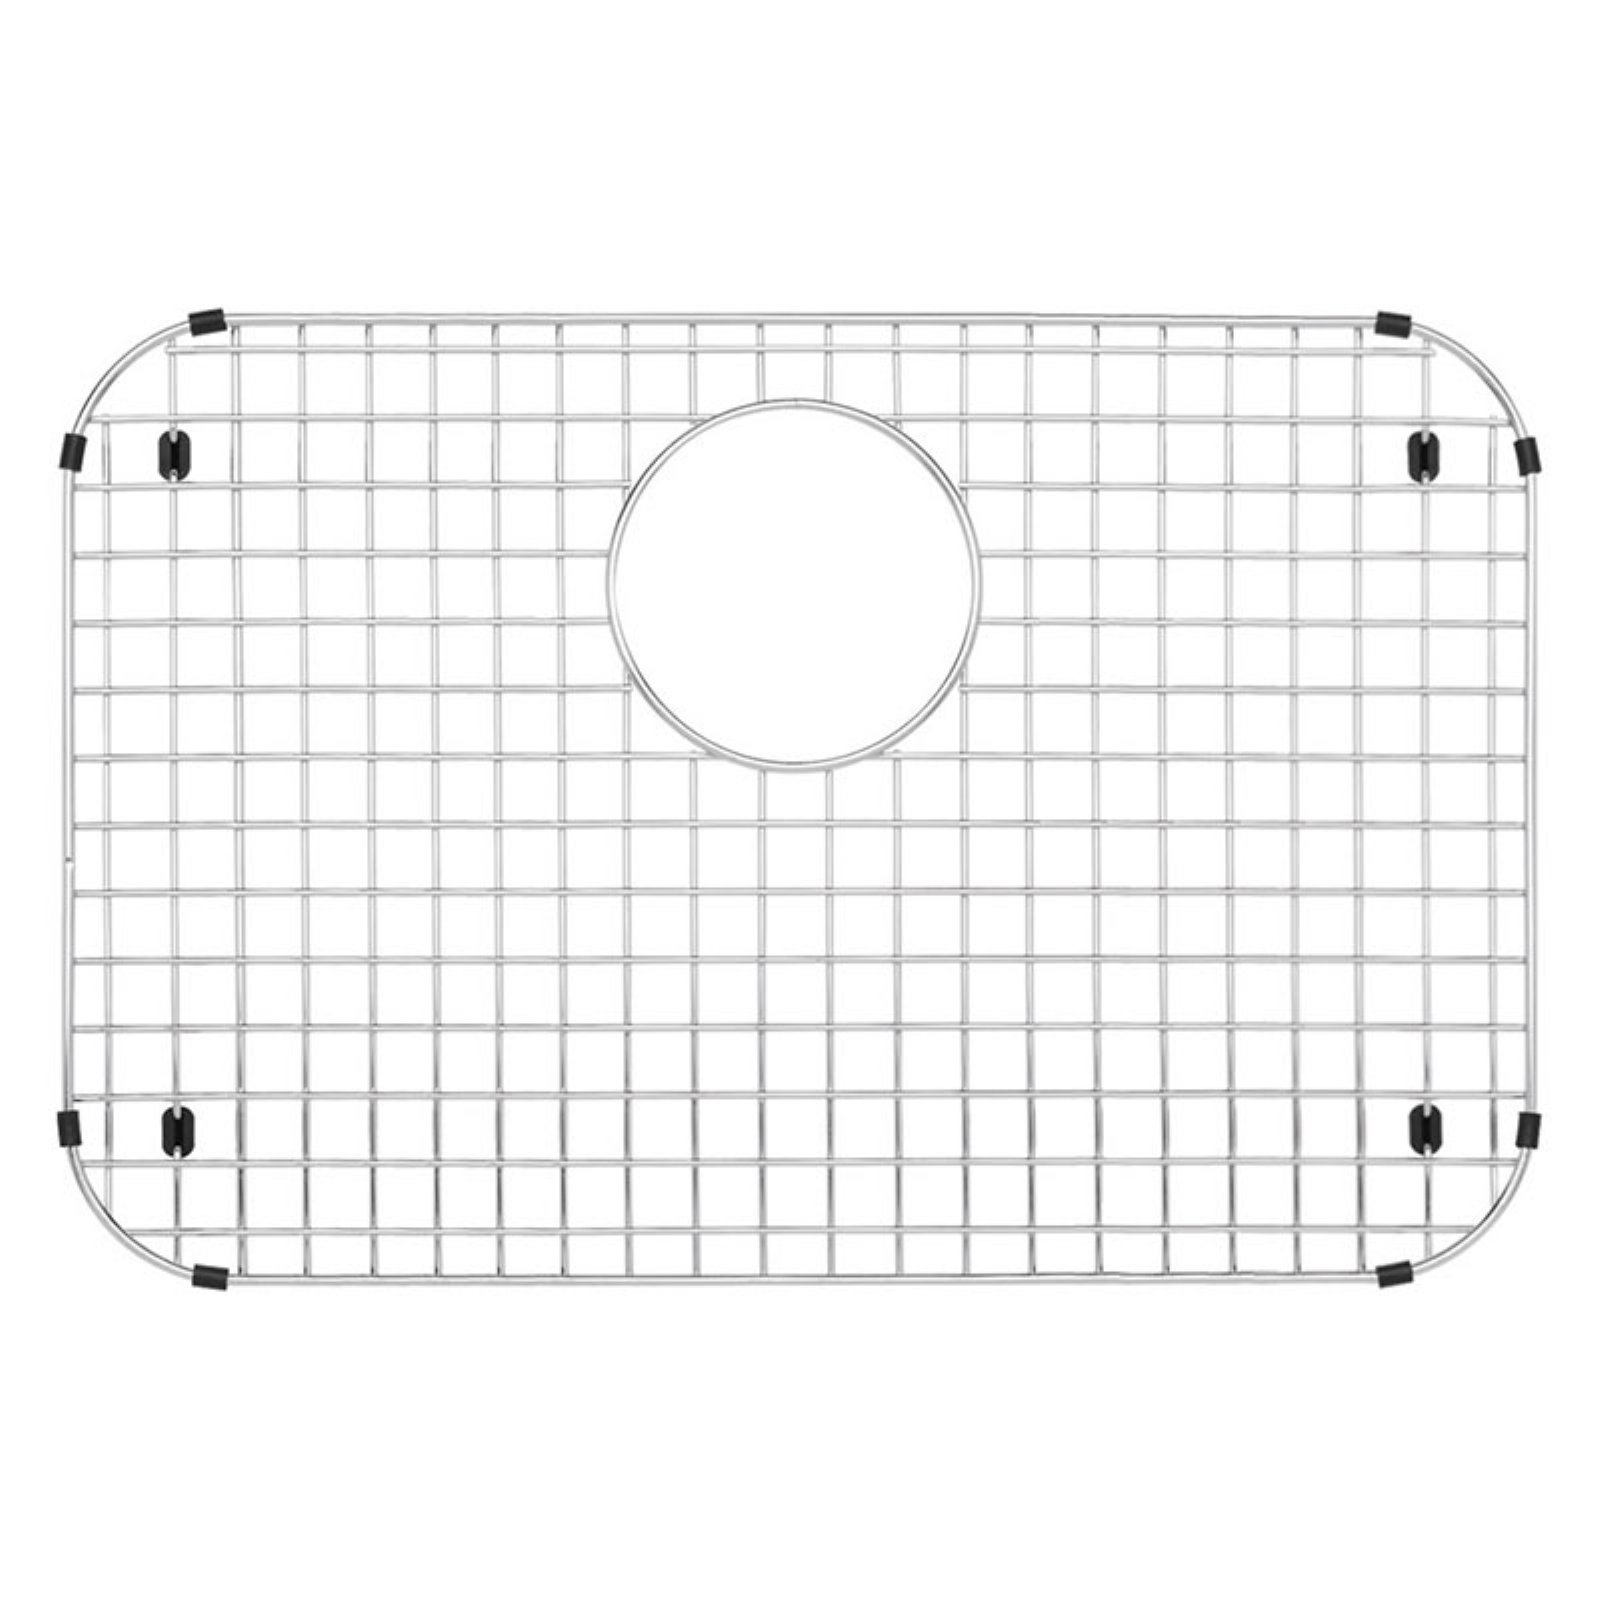 "Blanco 515299 21.75"" x 14.62"" Sink Grid, 0"